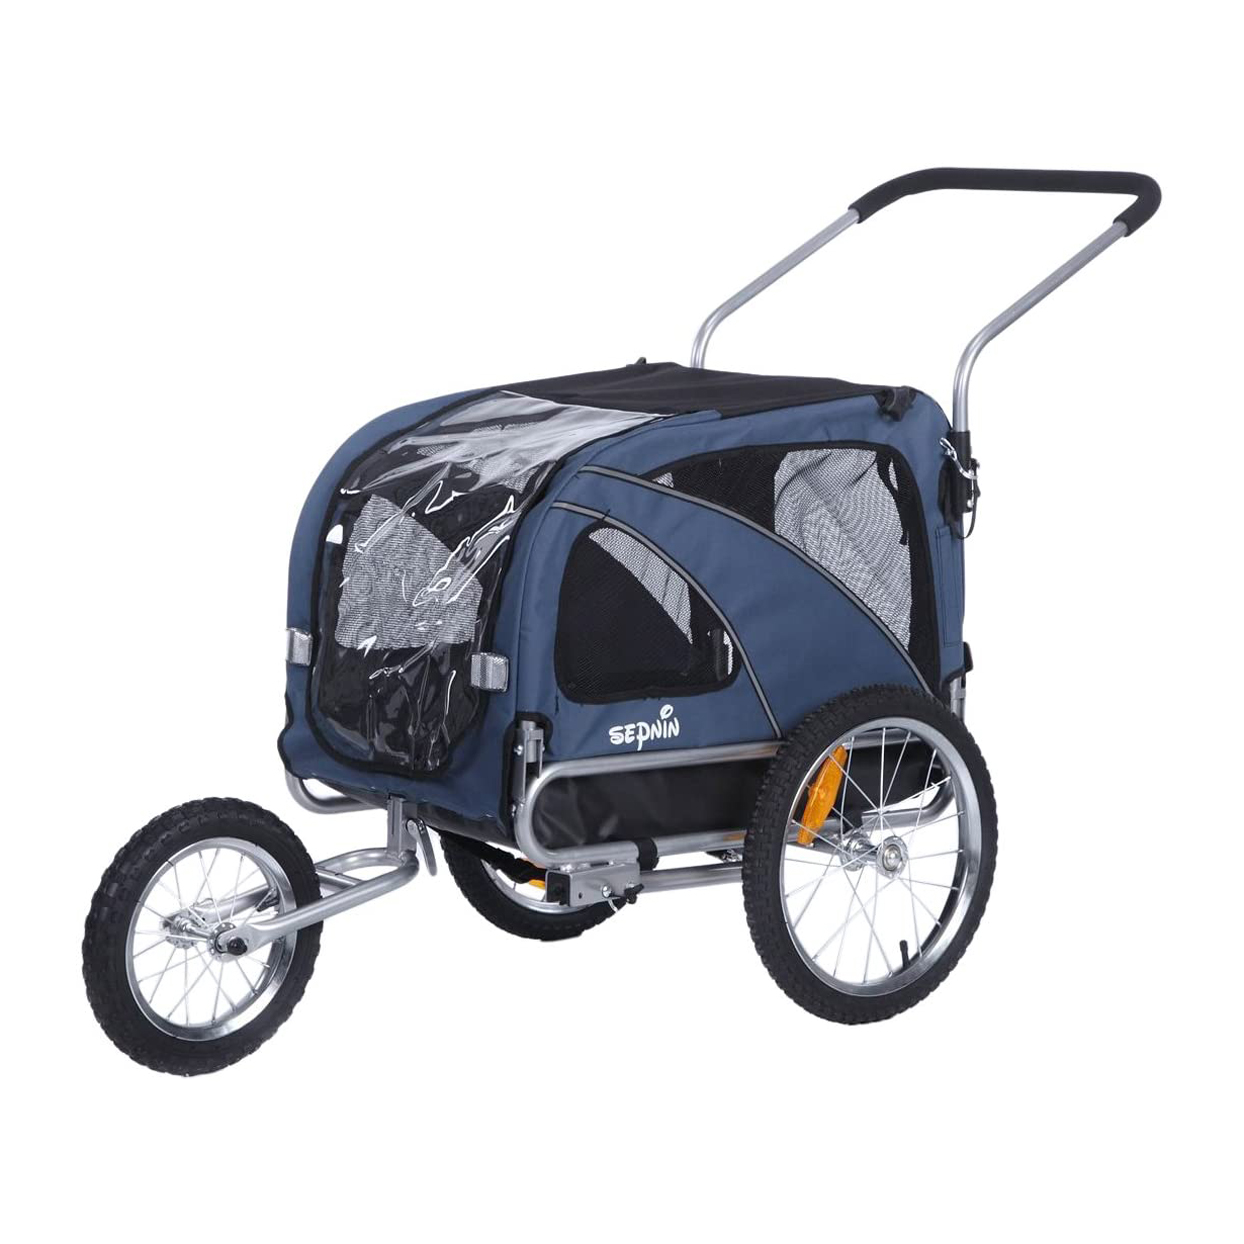 sepnine-2-in-1-medium-pet-trailer-stroller